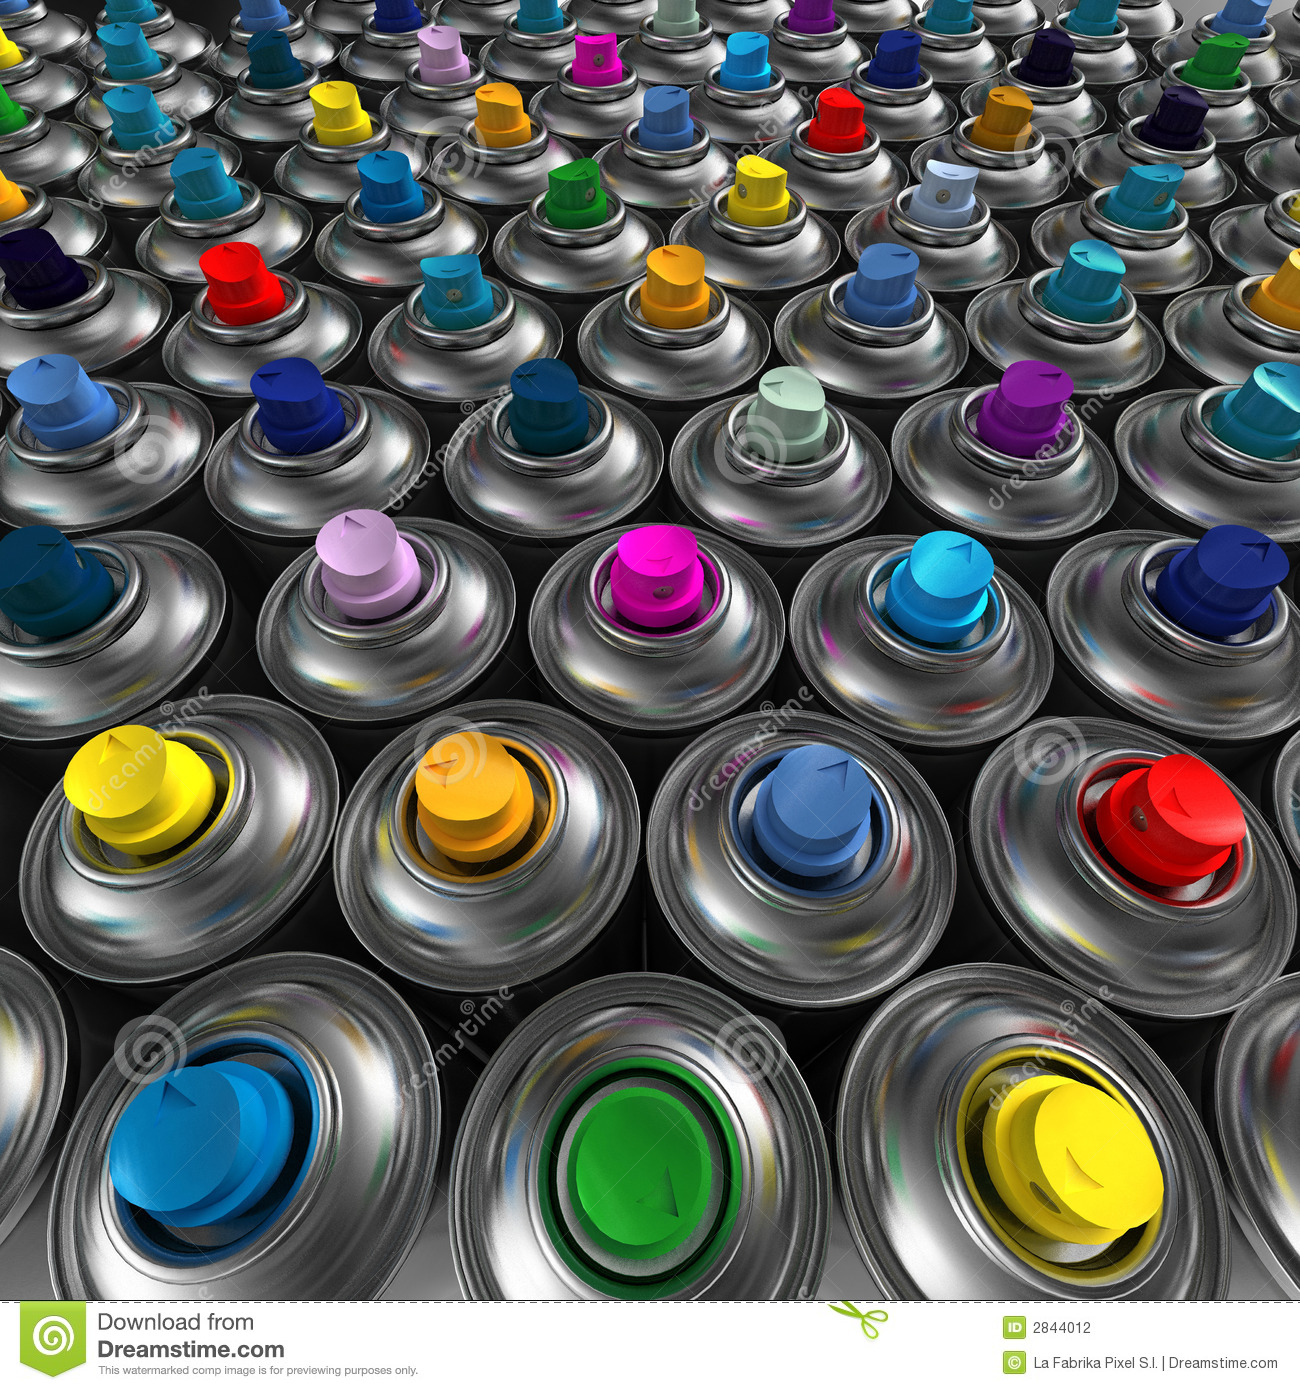 Aerosol spray cans stock photography image 2844012 for Happy color spray paint price